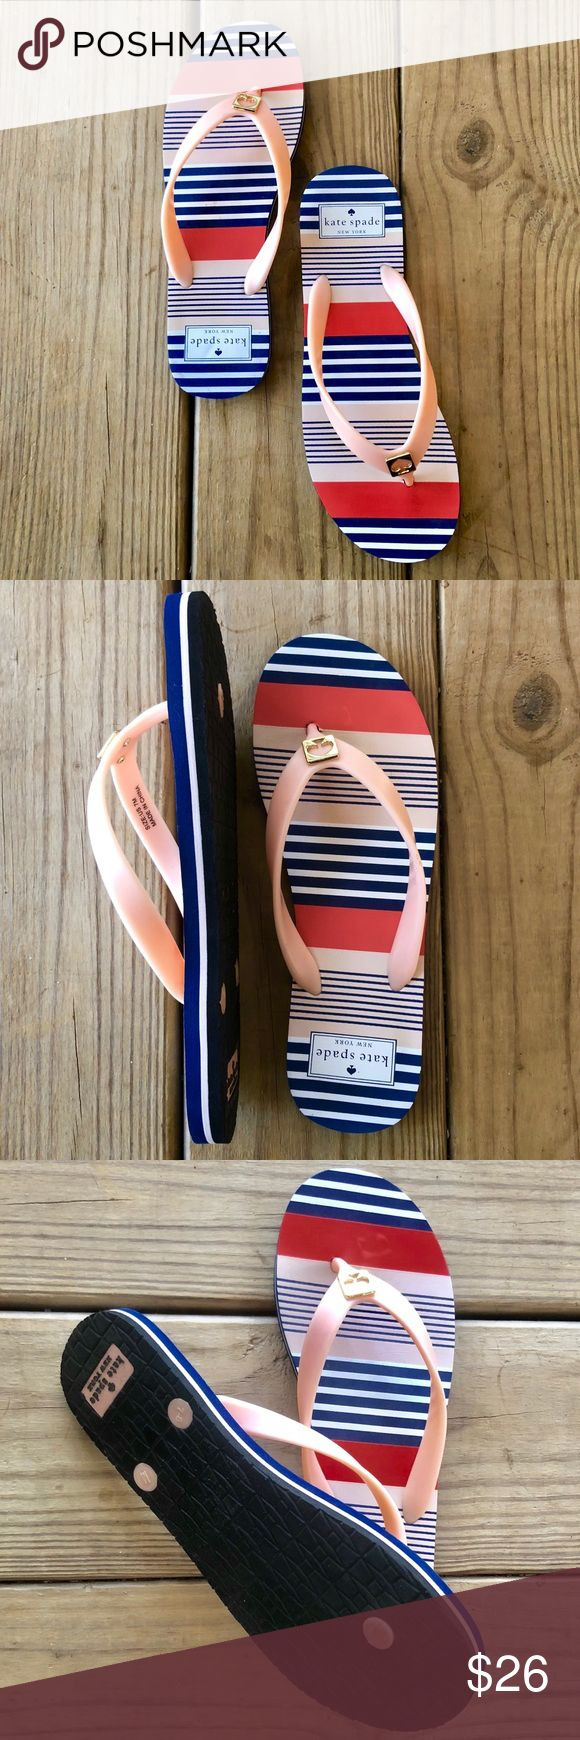 Kate Spade Striped Flip Flops Navy, pink & white flip fiops in great condition. kate spade Shoes Sandals